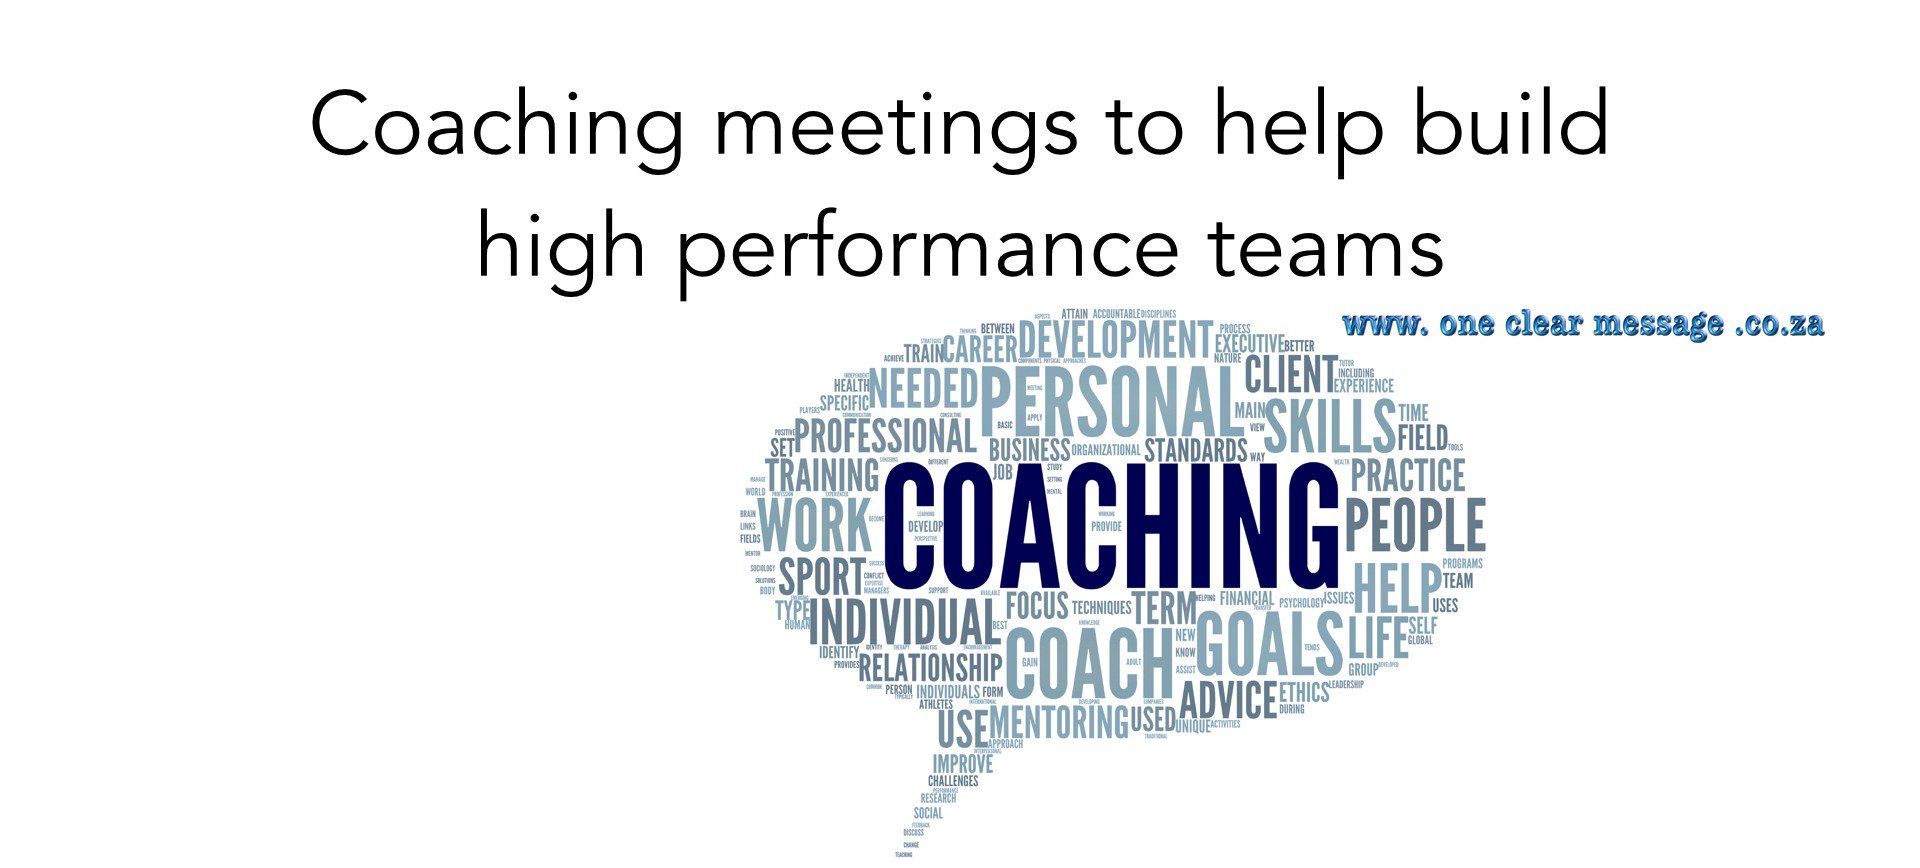 Peer coaching meetings